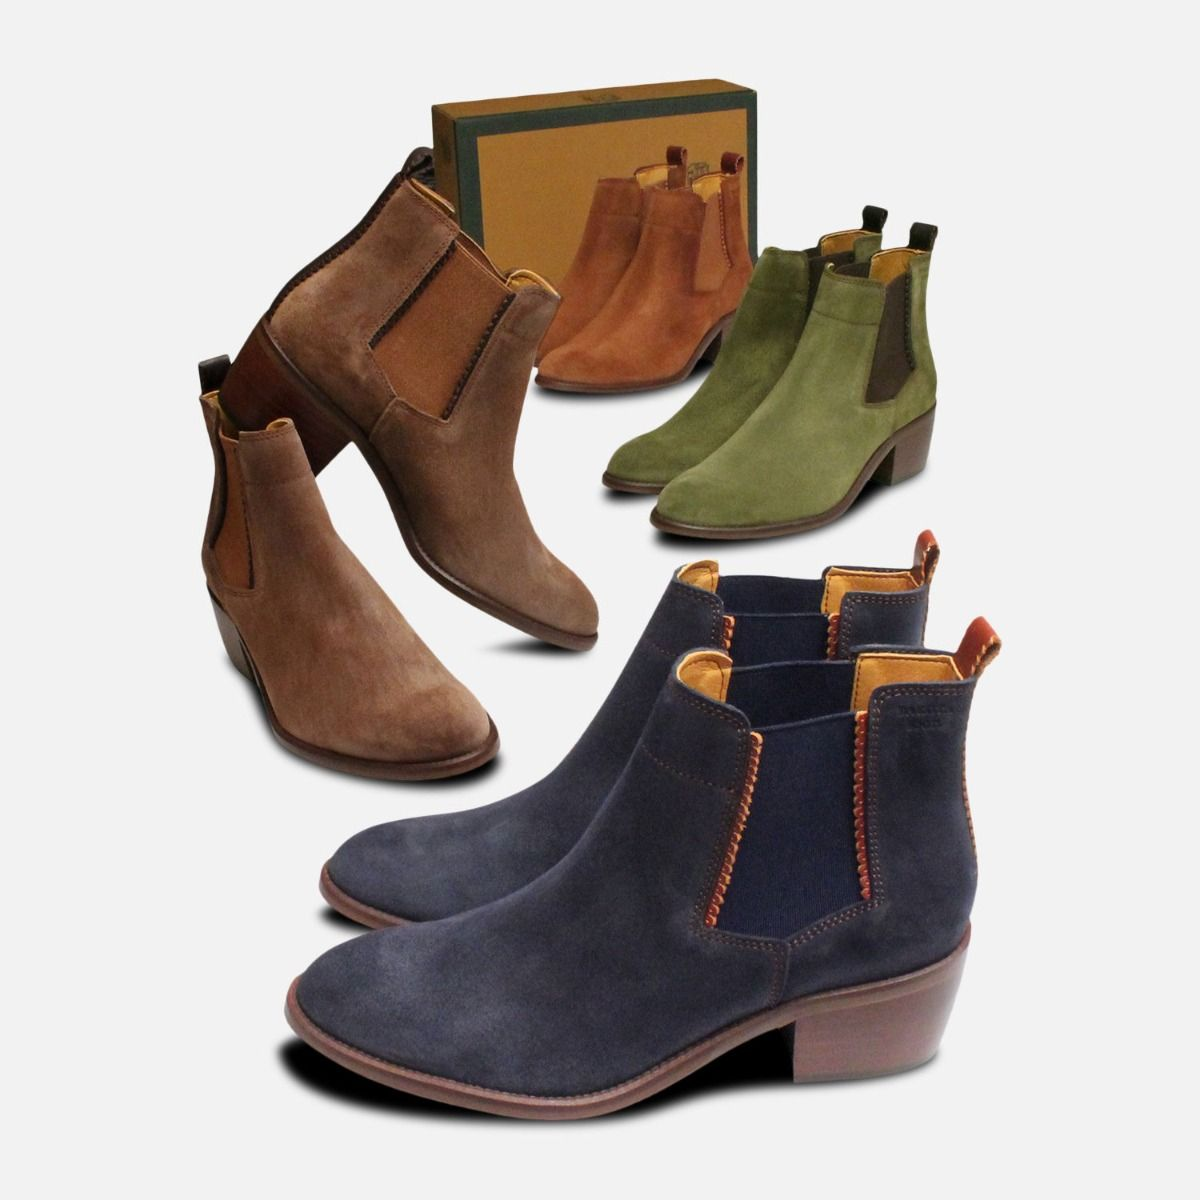 Ladies Cuban Heel Chelsea Boots in Tan Suede